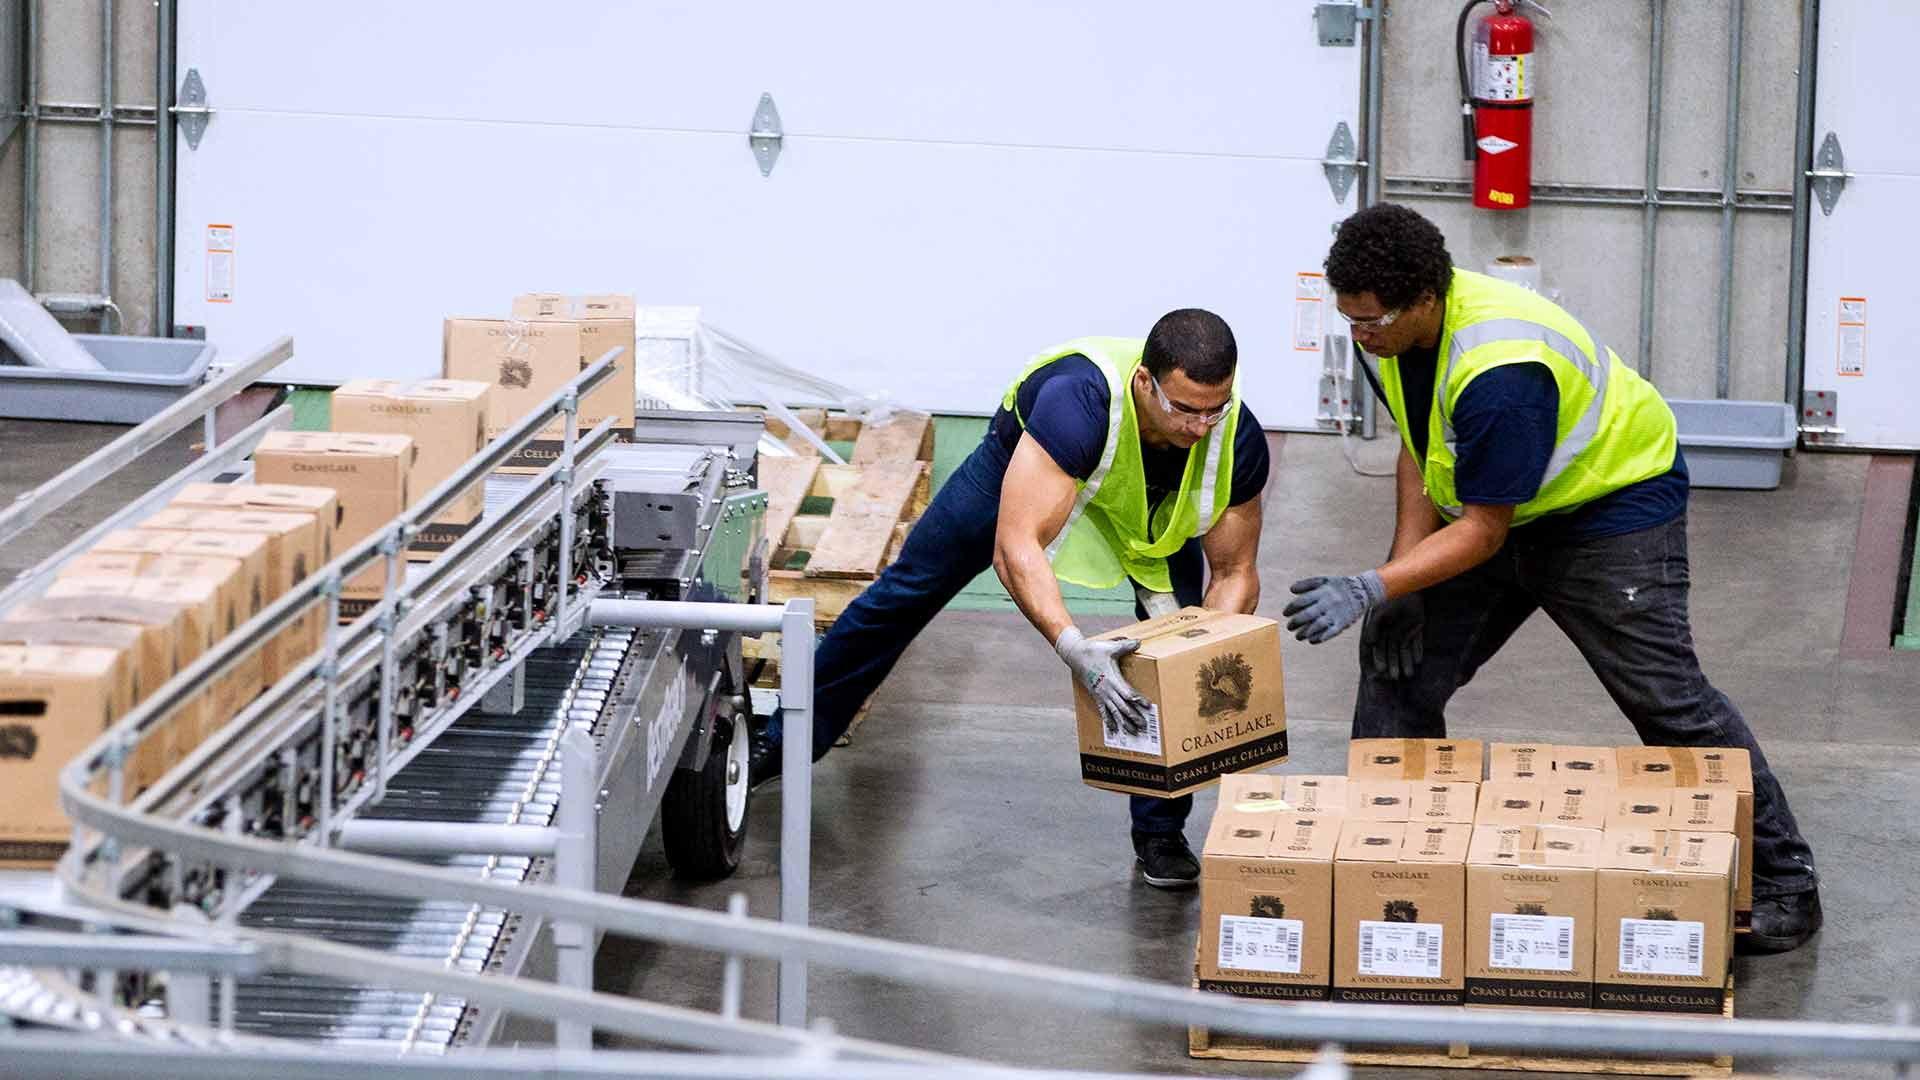 Two young men grab wine cases from a conveyer belt and place them on a pallet